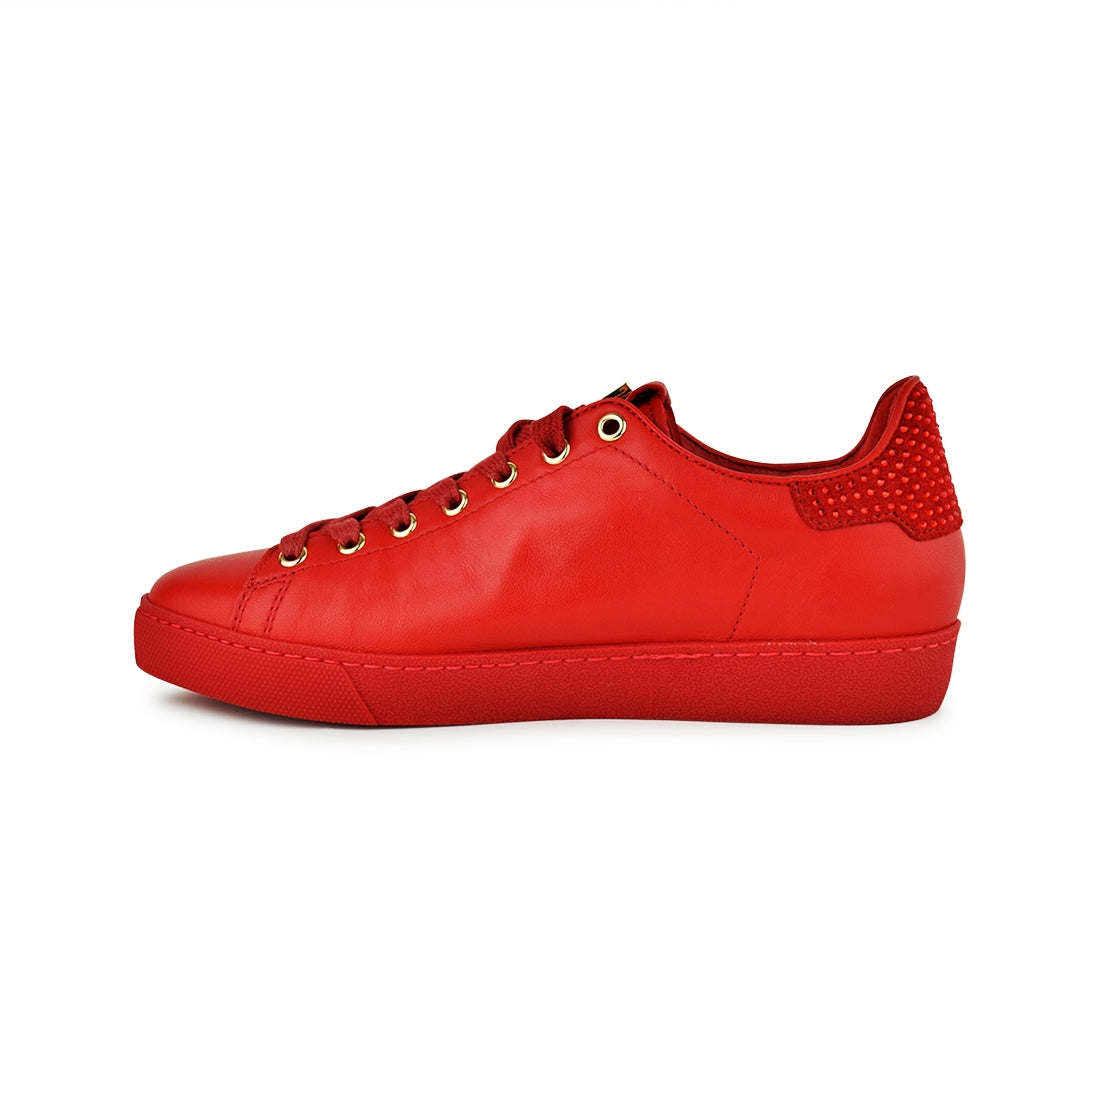 MILLOW - Hogl Lace Up Red